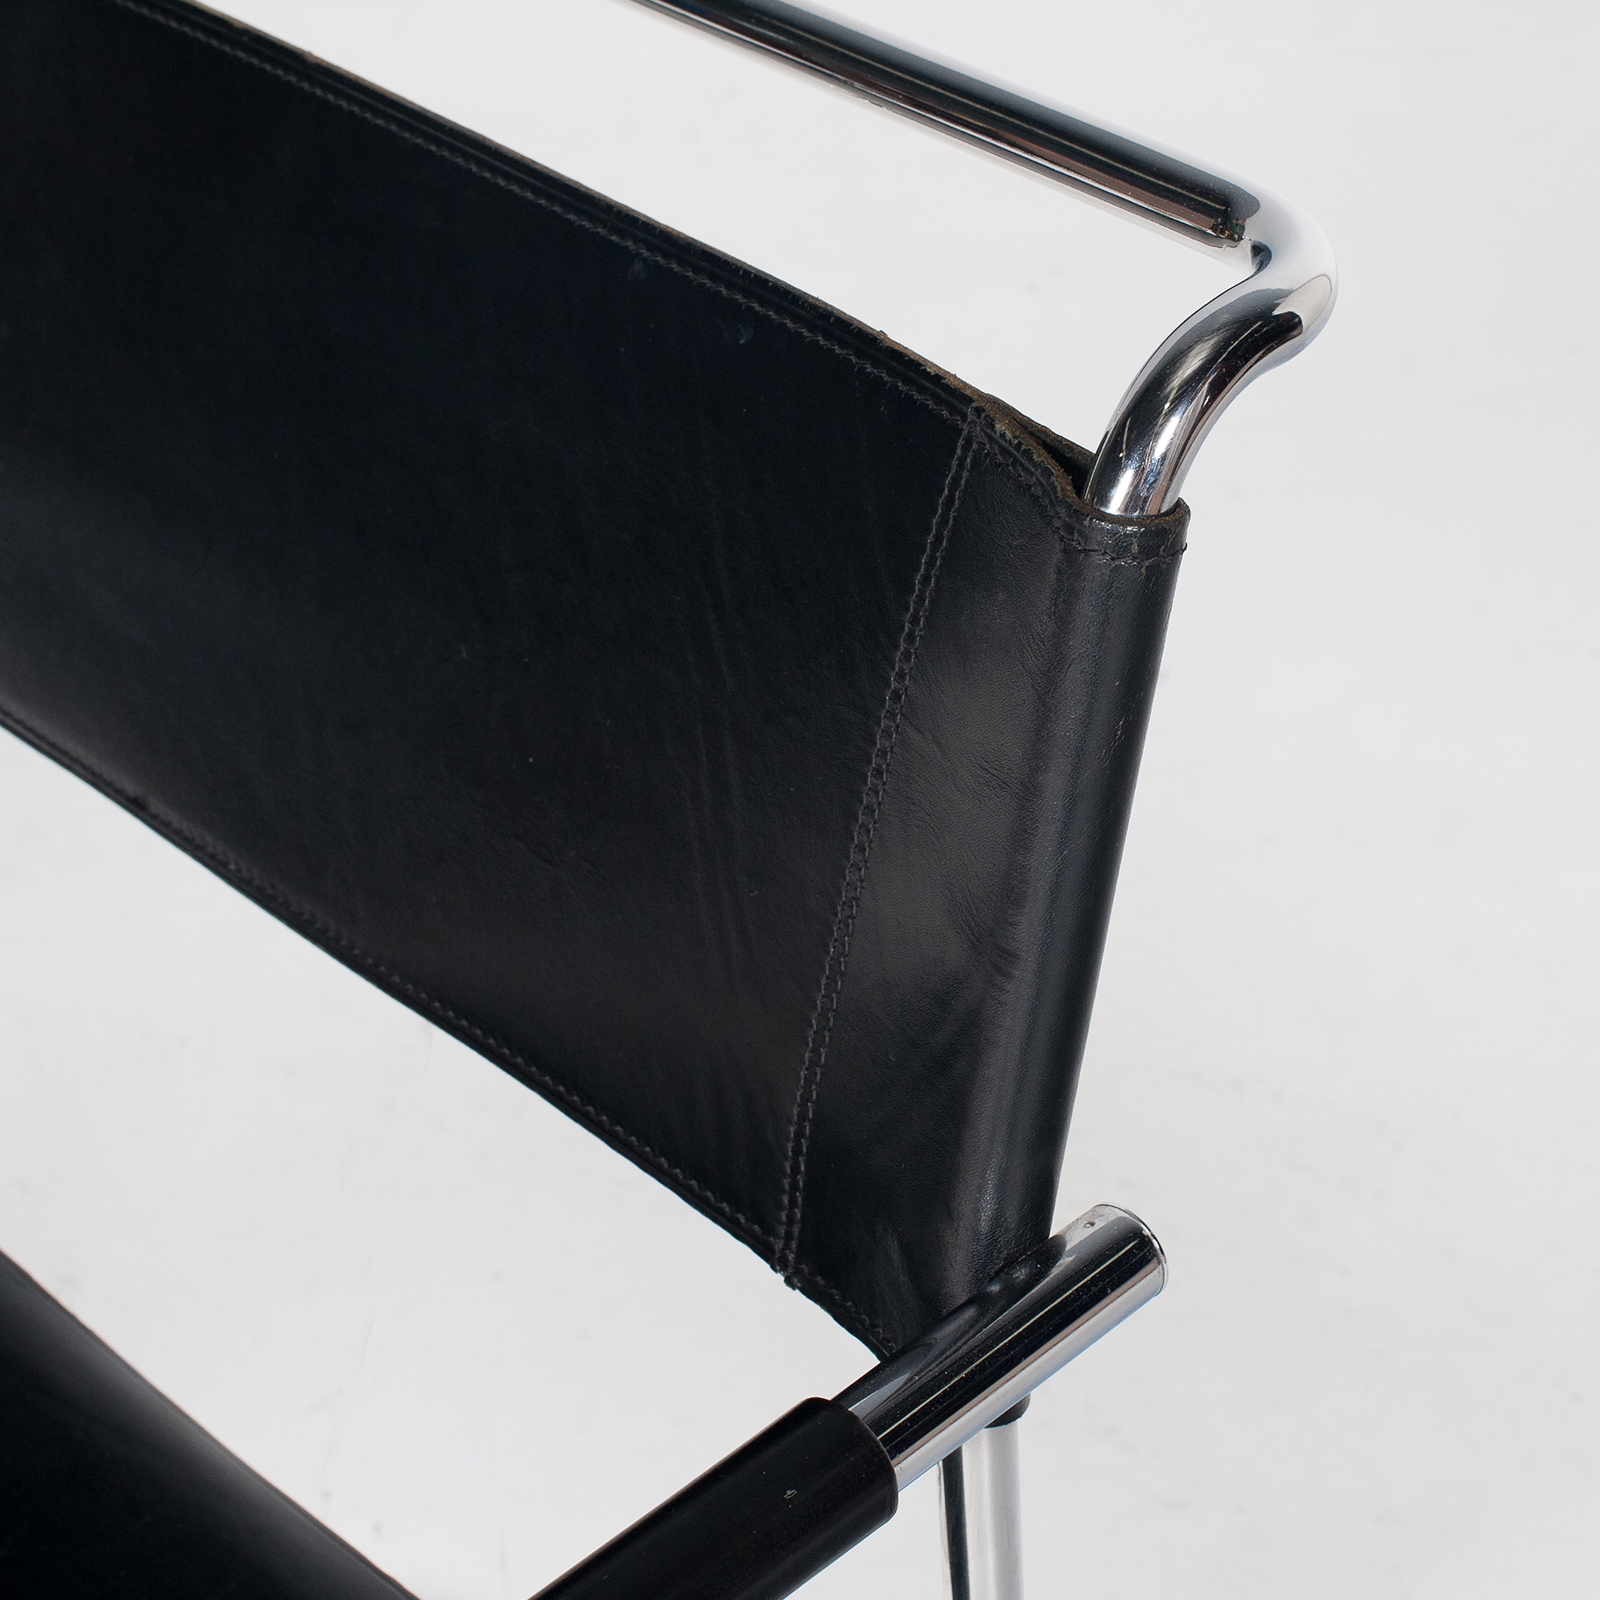 Set Of Four Cantilever Dining Chairs In Black Leather And Chrome By Mart Stam For Thonet, 1970s, The Netherlands 401